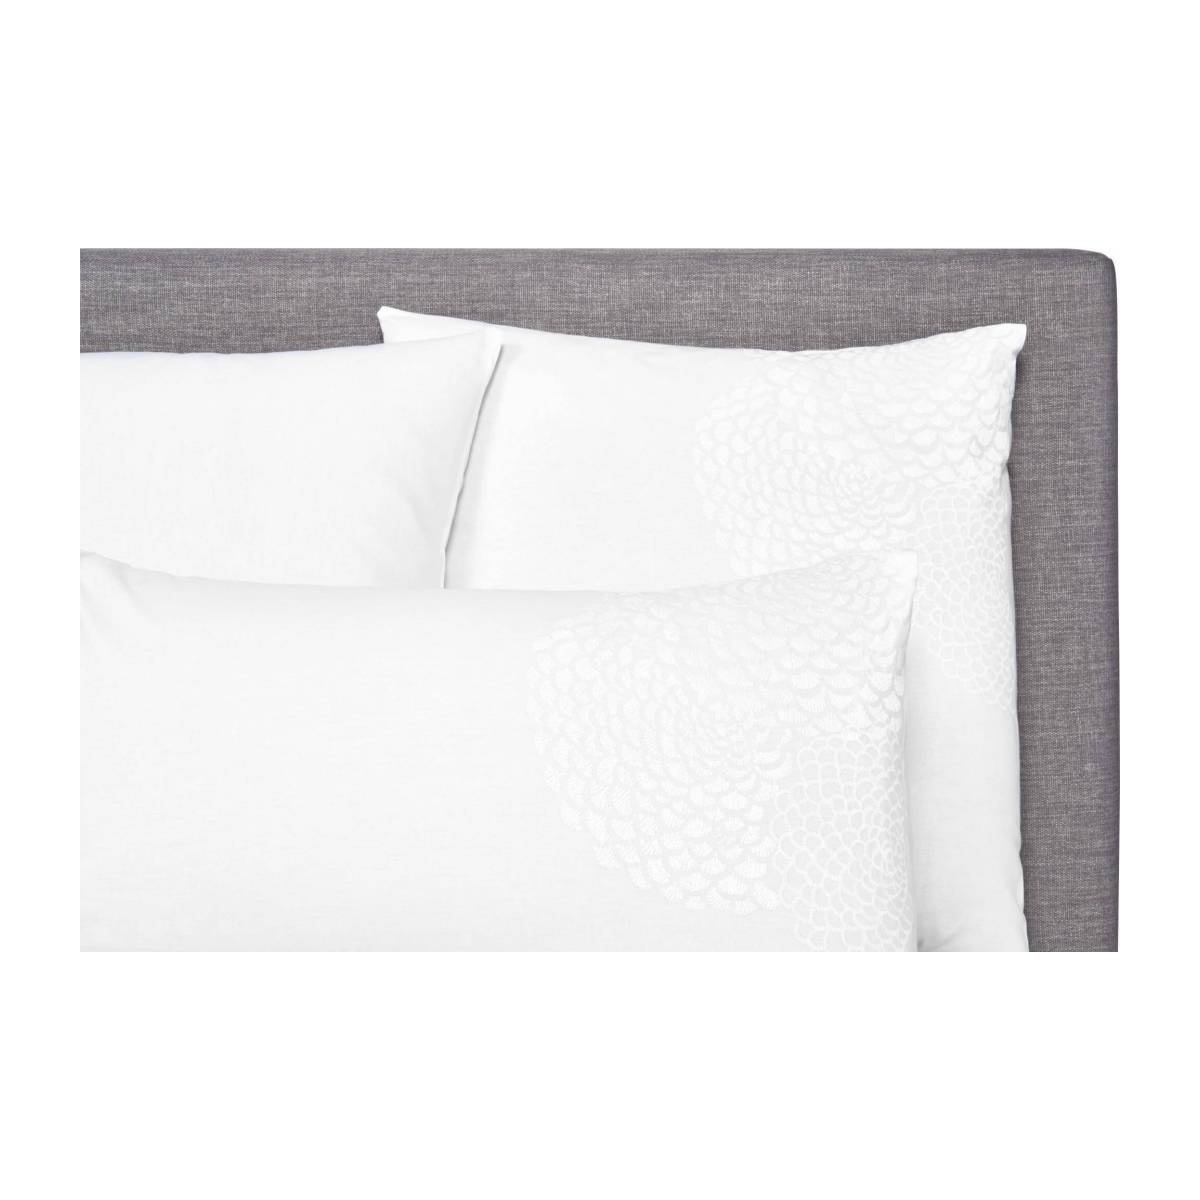 200 x 200 embroidered duvet cover   n°2